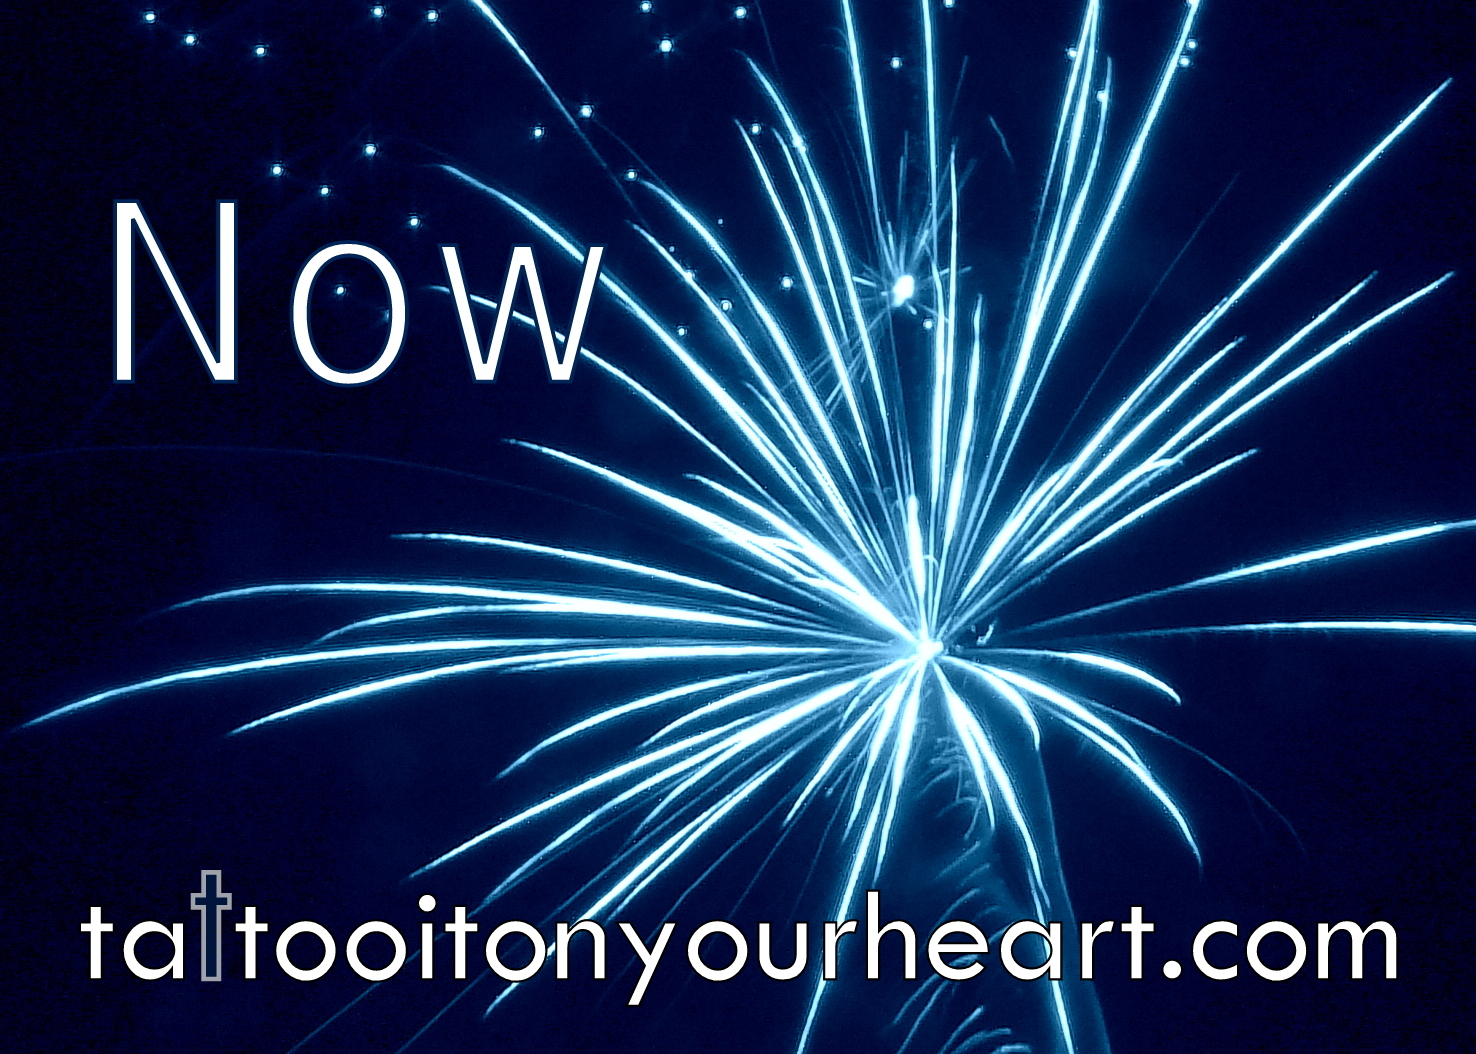 Rachael_M_Colby_Tattoo_It_On_Your_Heart_blue_firework_Now-.JPG